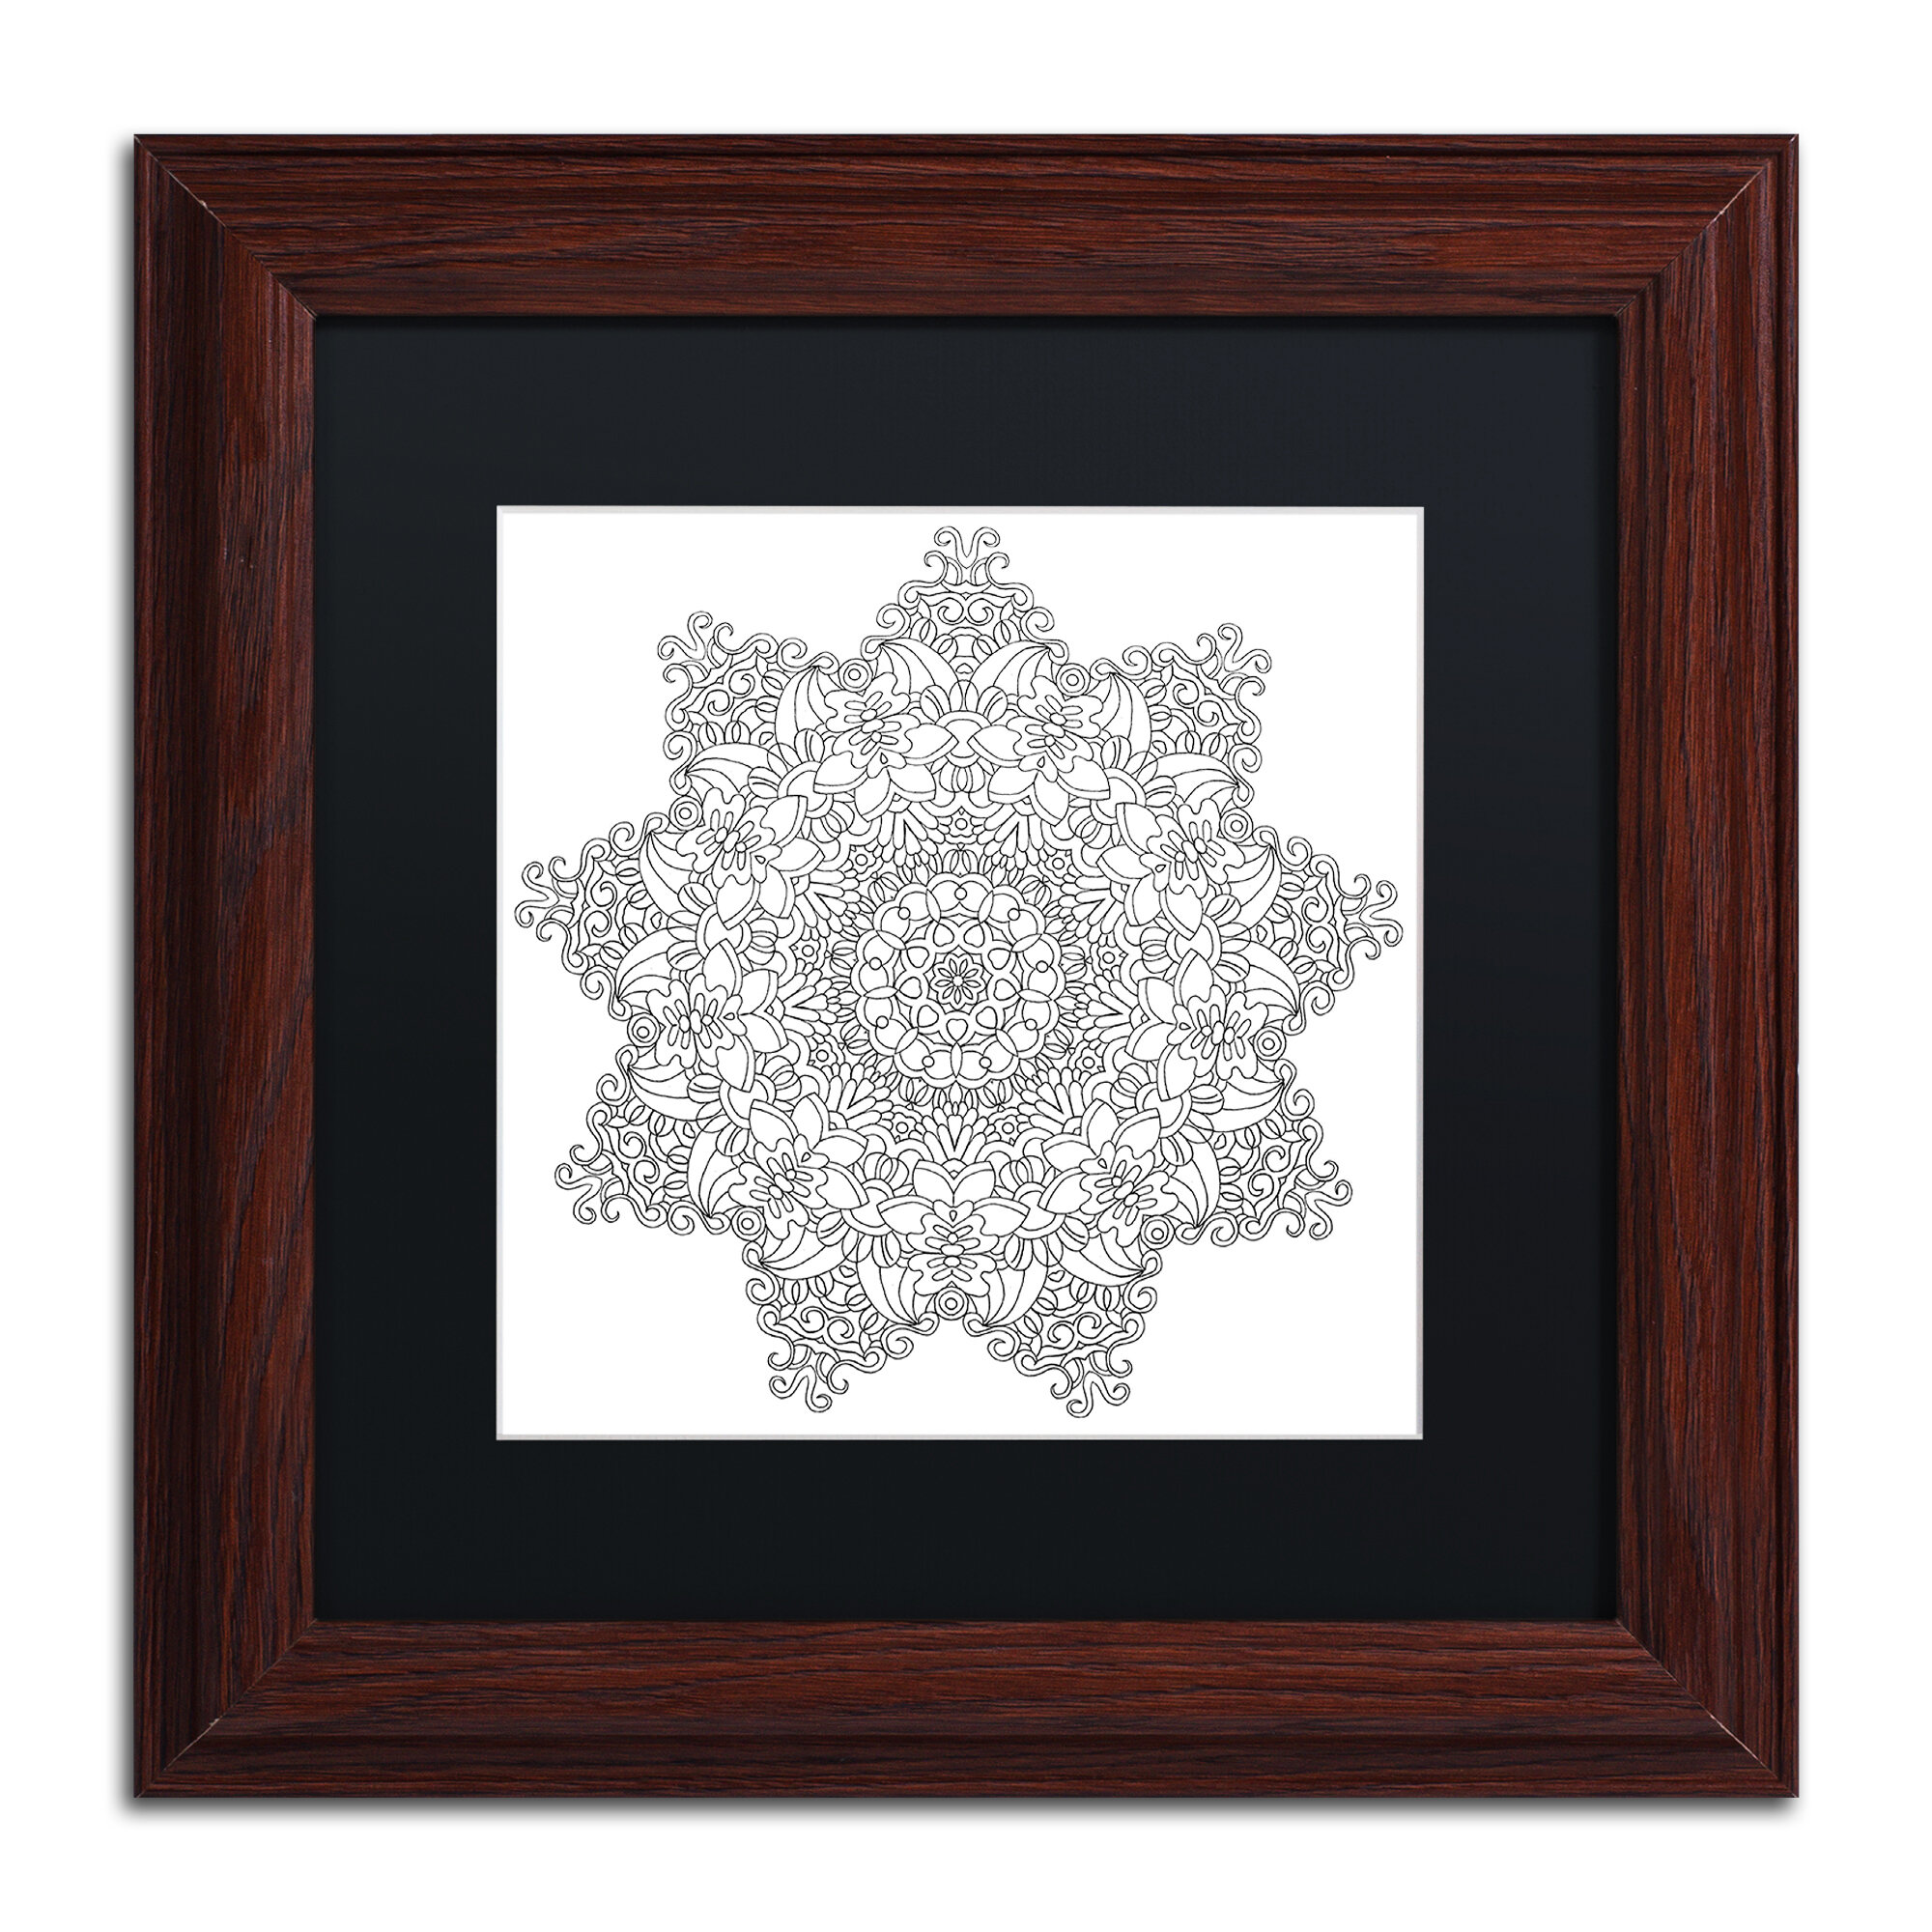 Trademark Art Mixed Coloring Book 37 By Kathy G Ahrens Framed Graphic Art